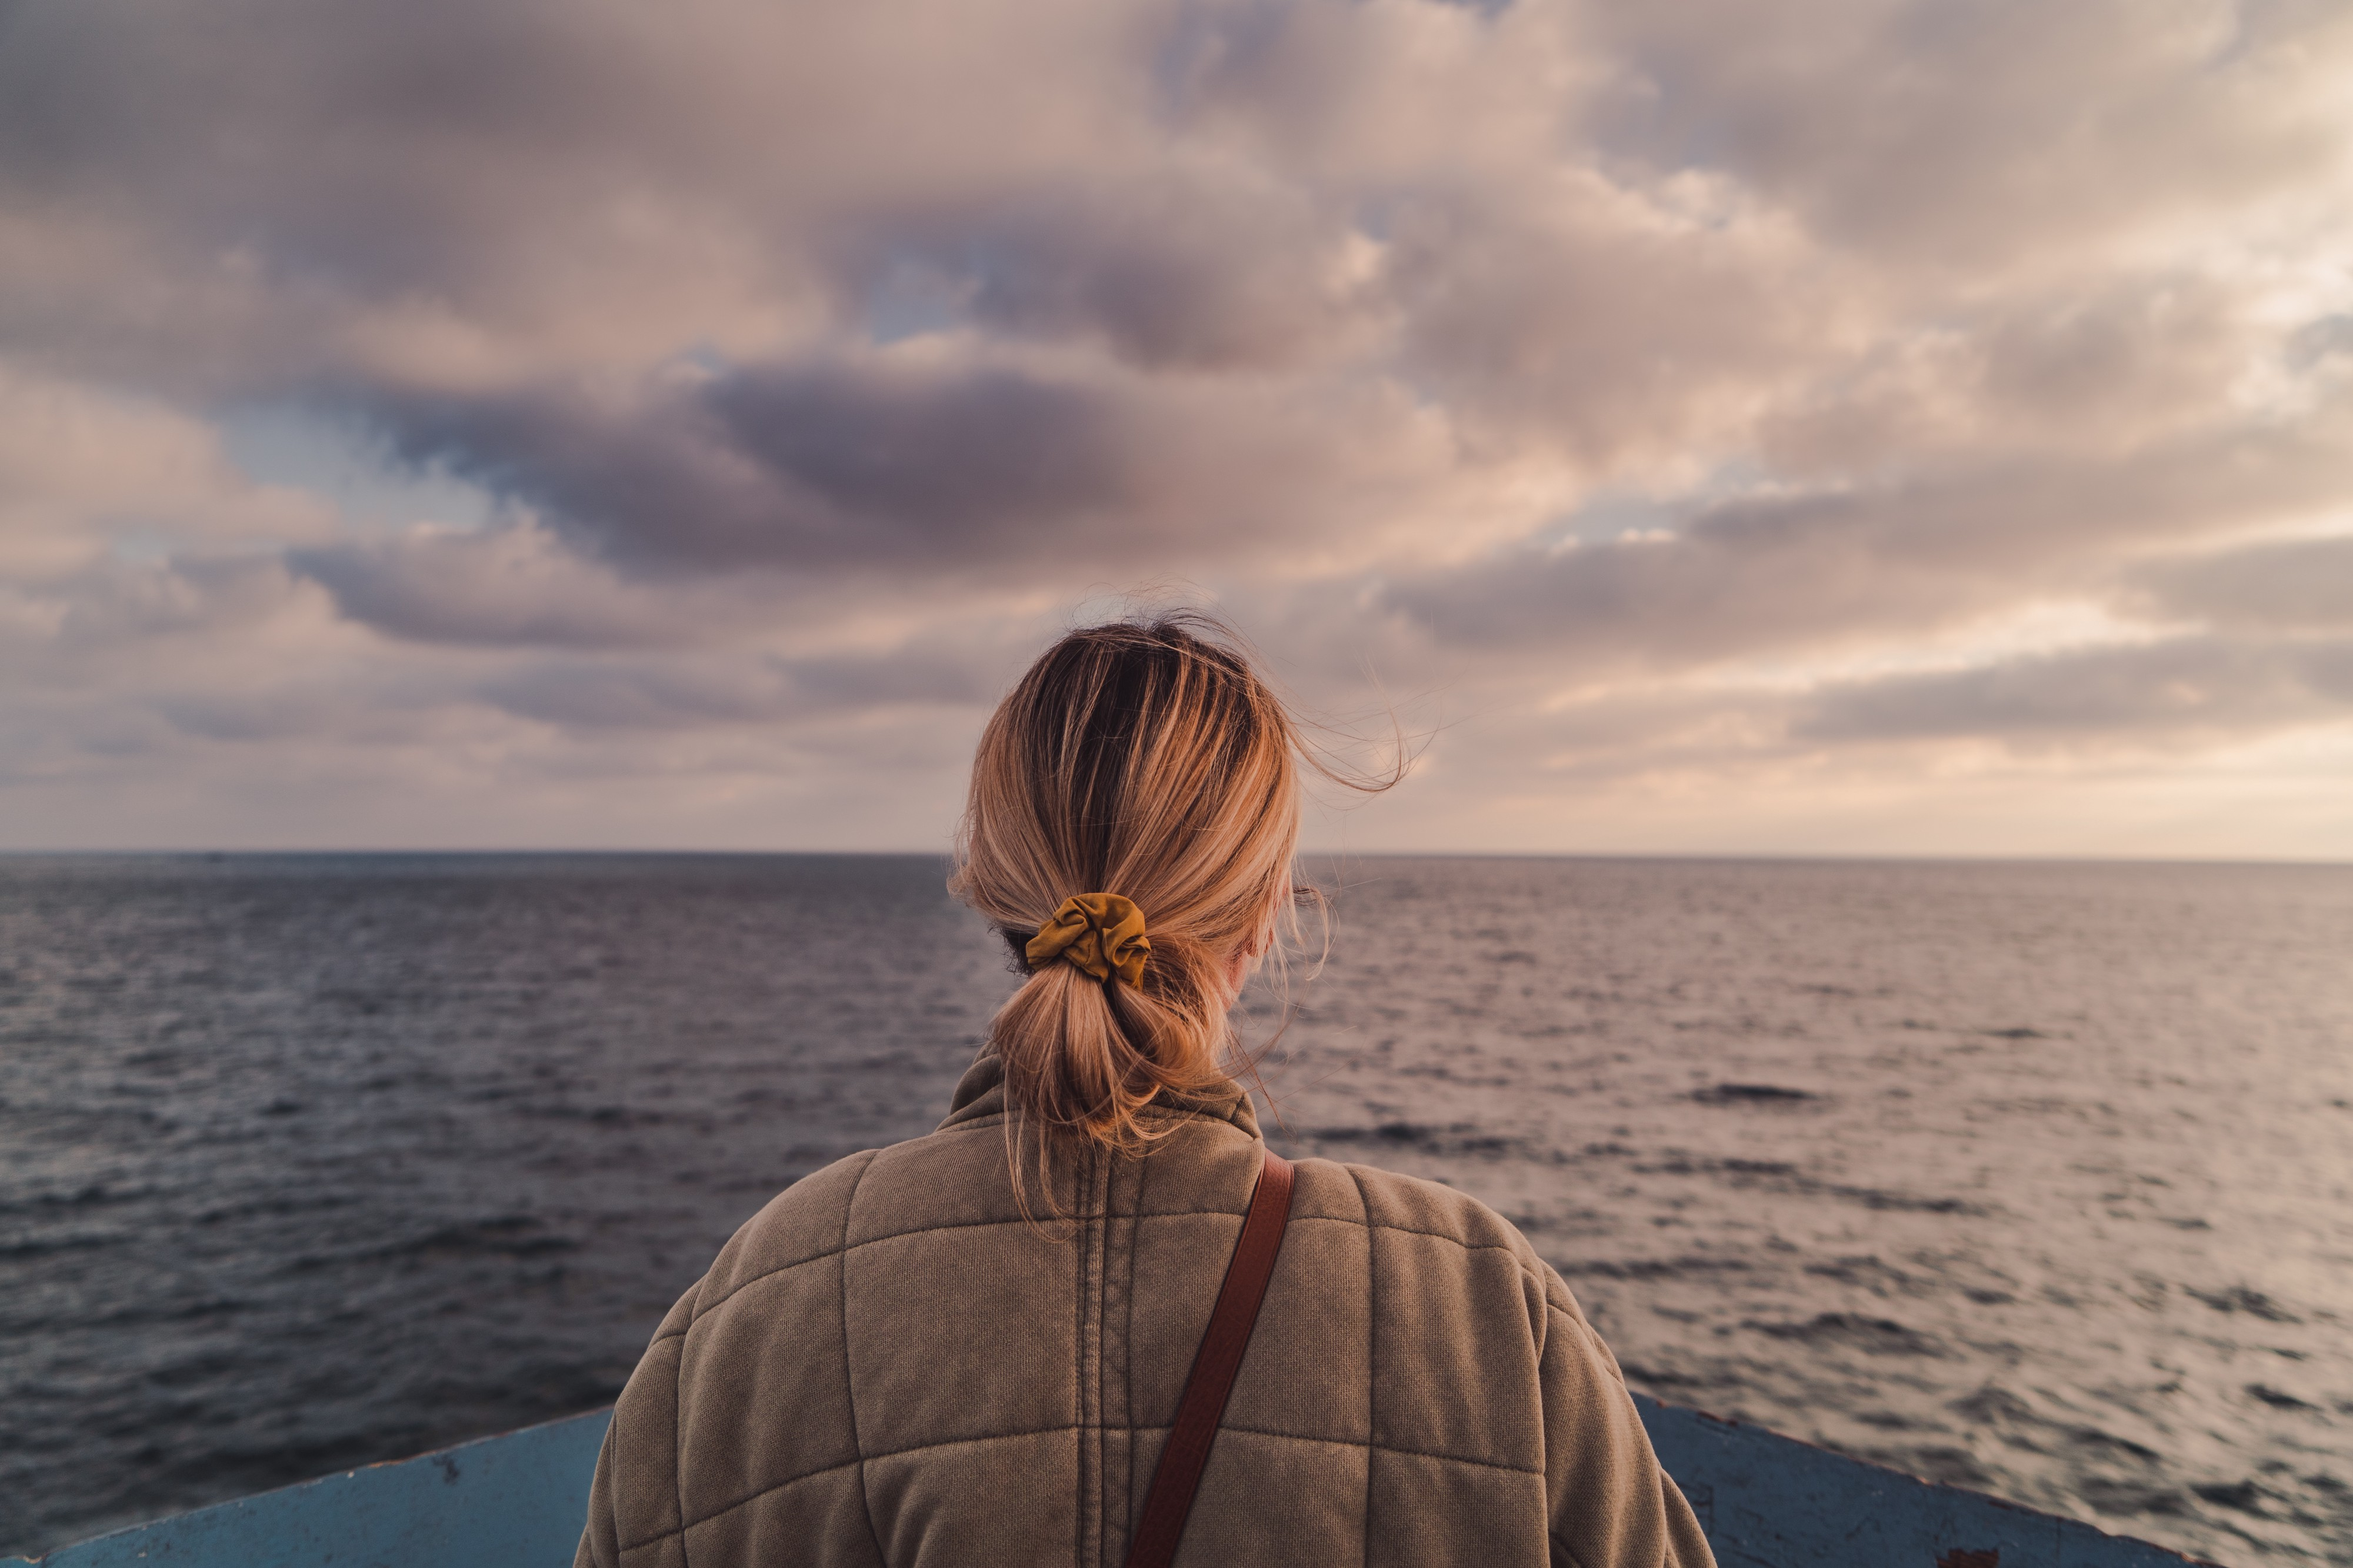 A woman stands at the front of a boat, looking out to the sea in front of her. The sky is cloudy and grey as the sun sets.